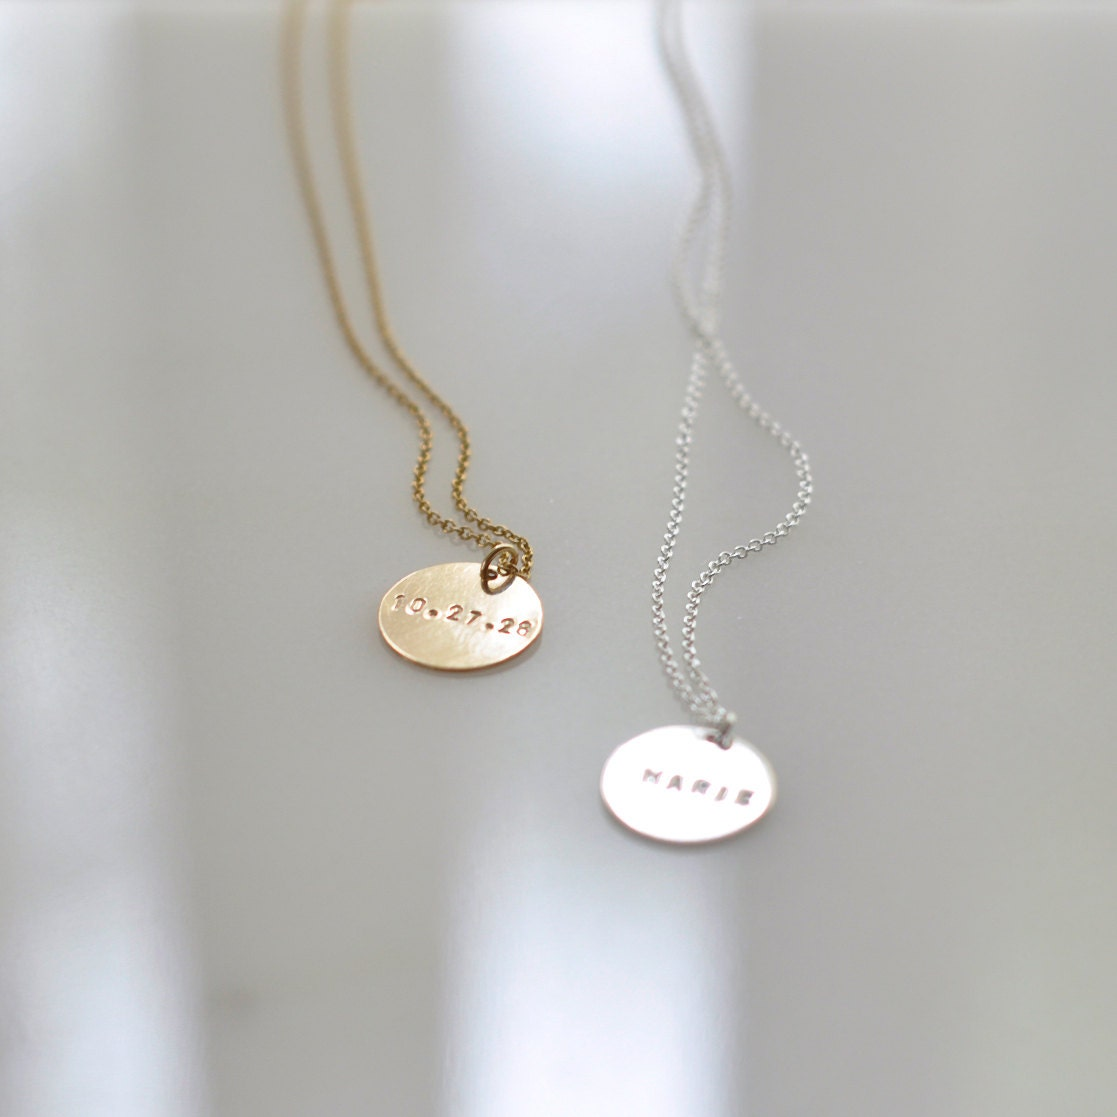 Engraved gold coin necklace personalized charm necklace zoom aloadofball Image collections